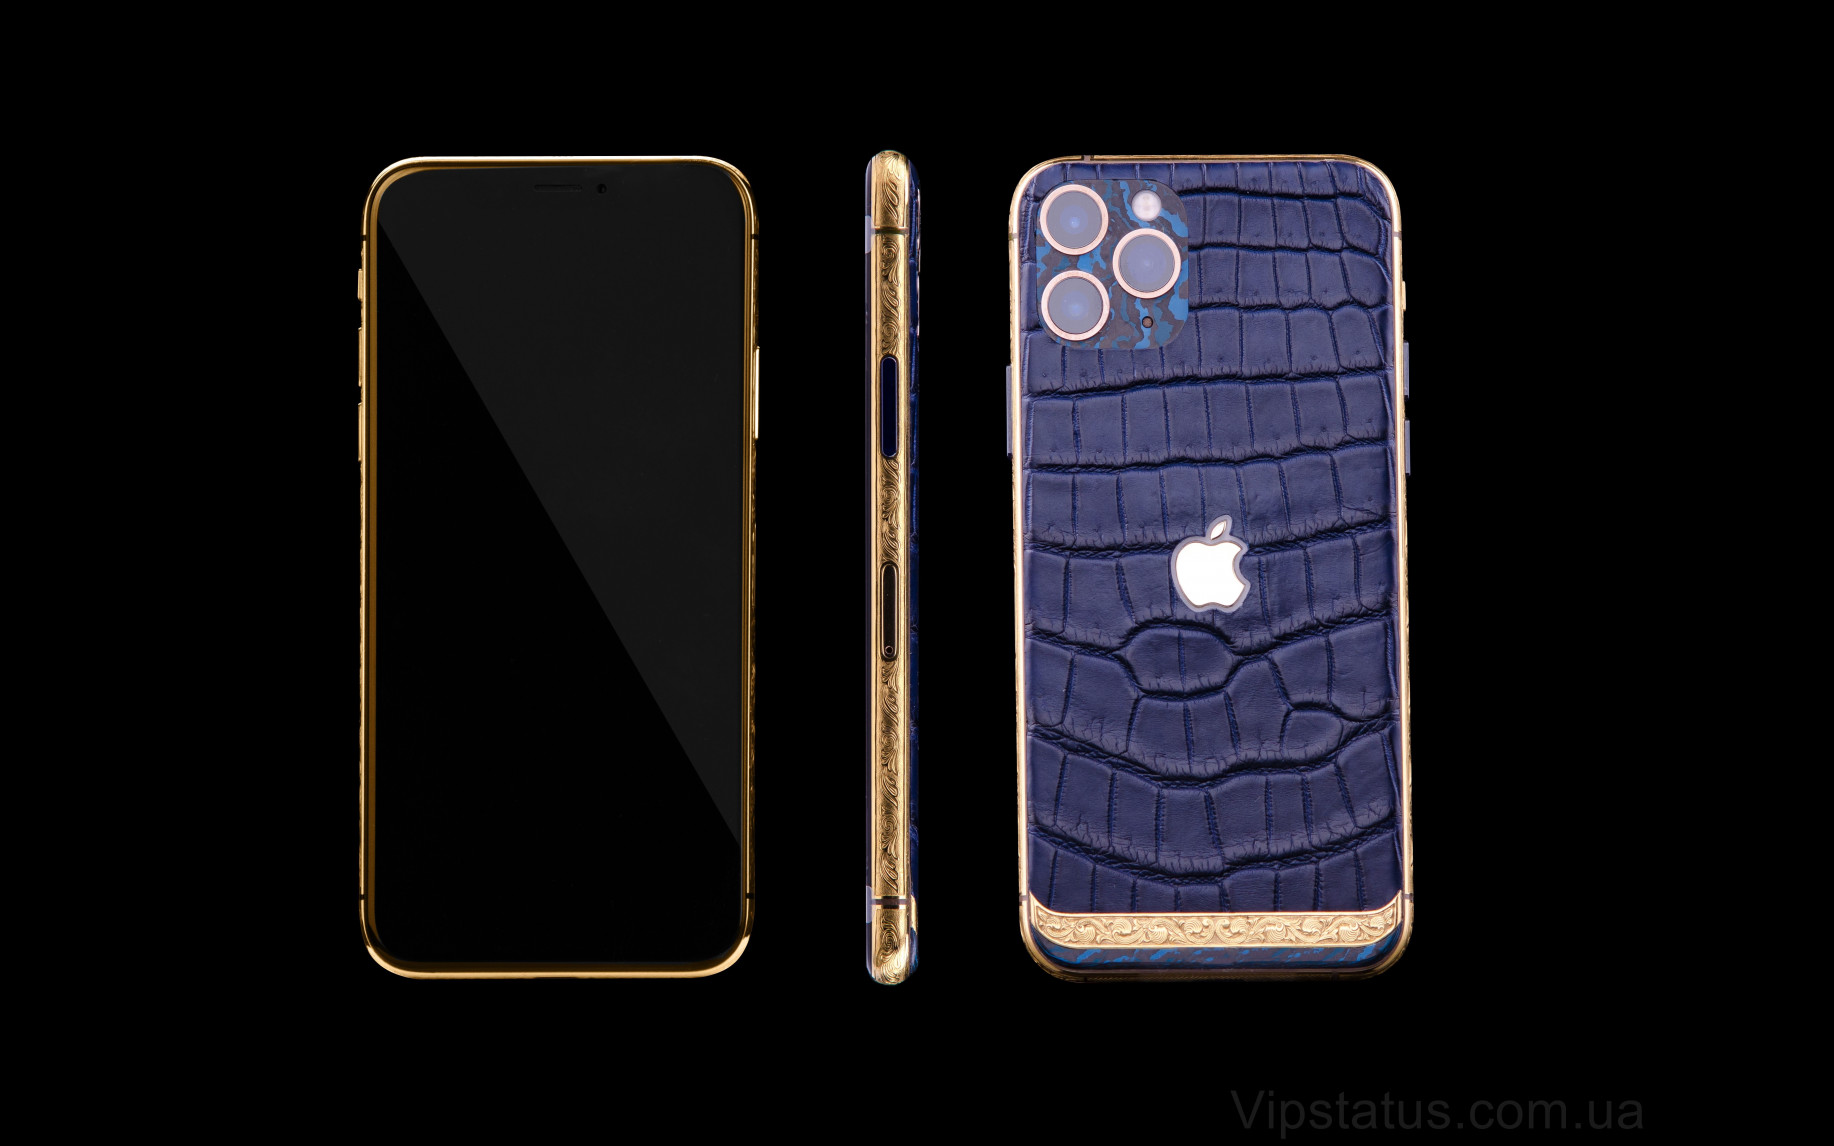 Elite Carbon Magic IPHONE XS 512 GB Carbon Magic IPHONE XS 512 GB image 4